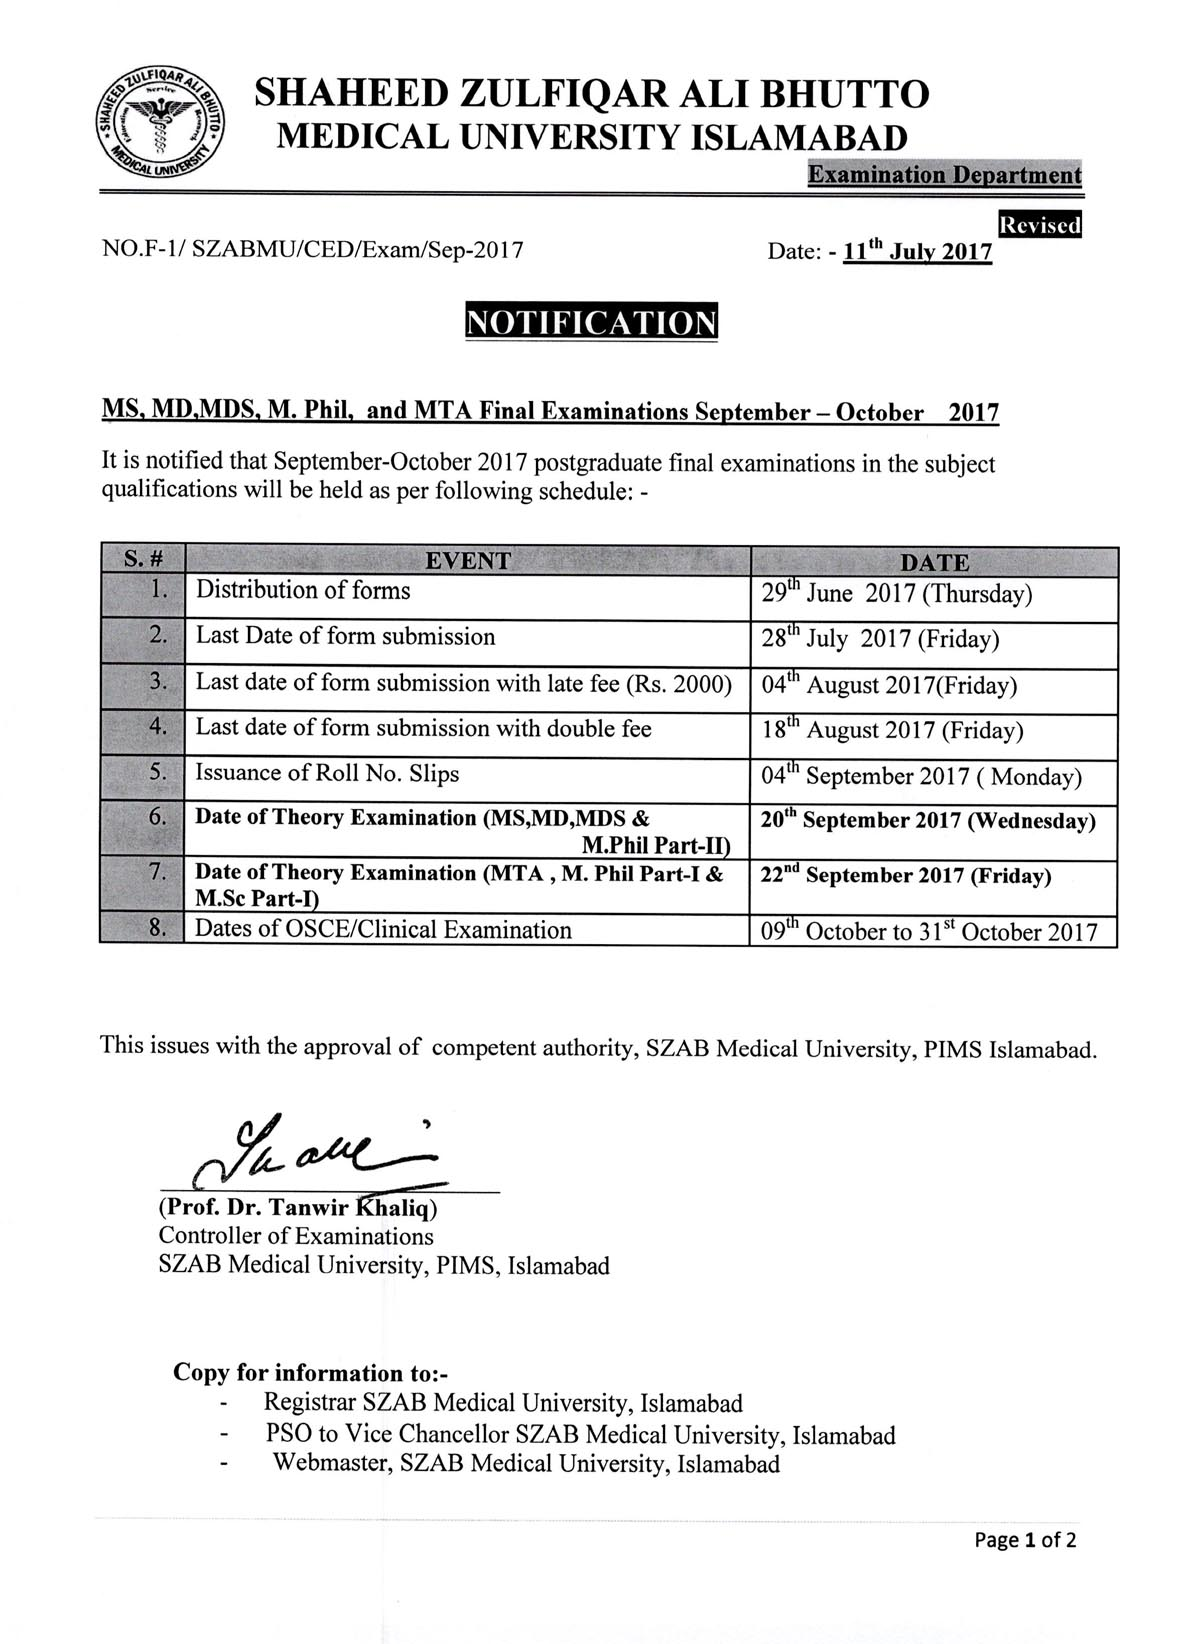 Revised Notification for MS, MD, MDS, M.Phil & MTA Final Exams September - October 2017